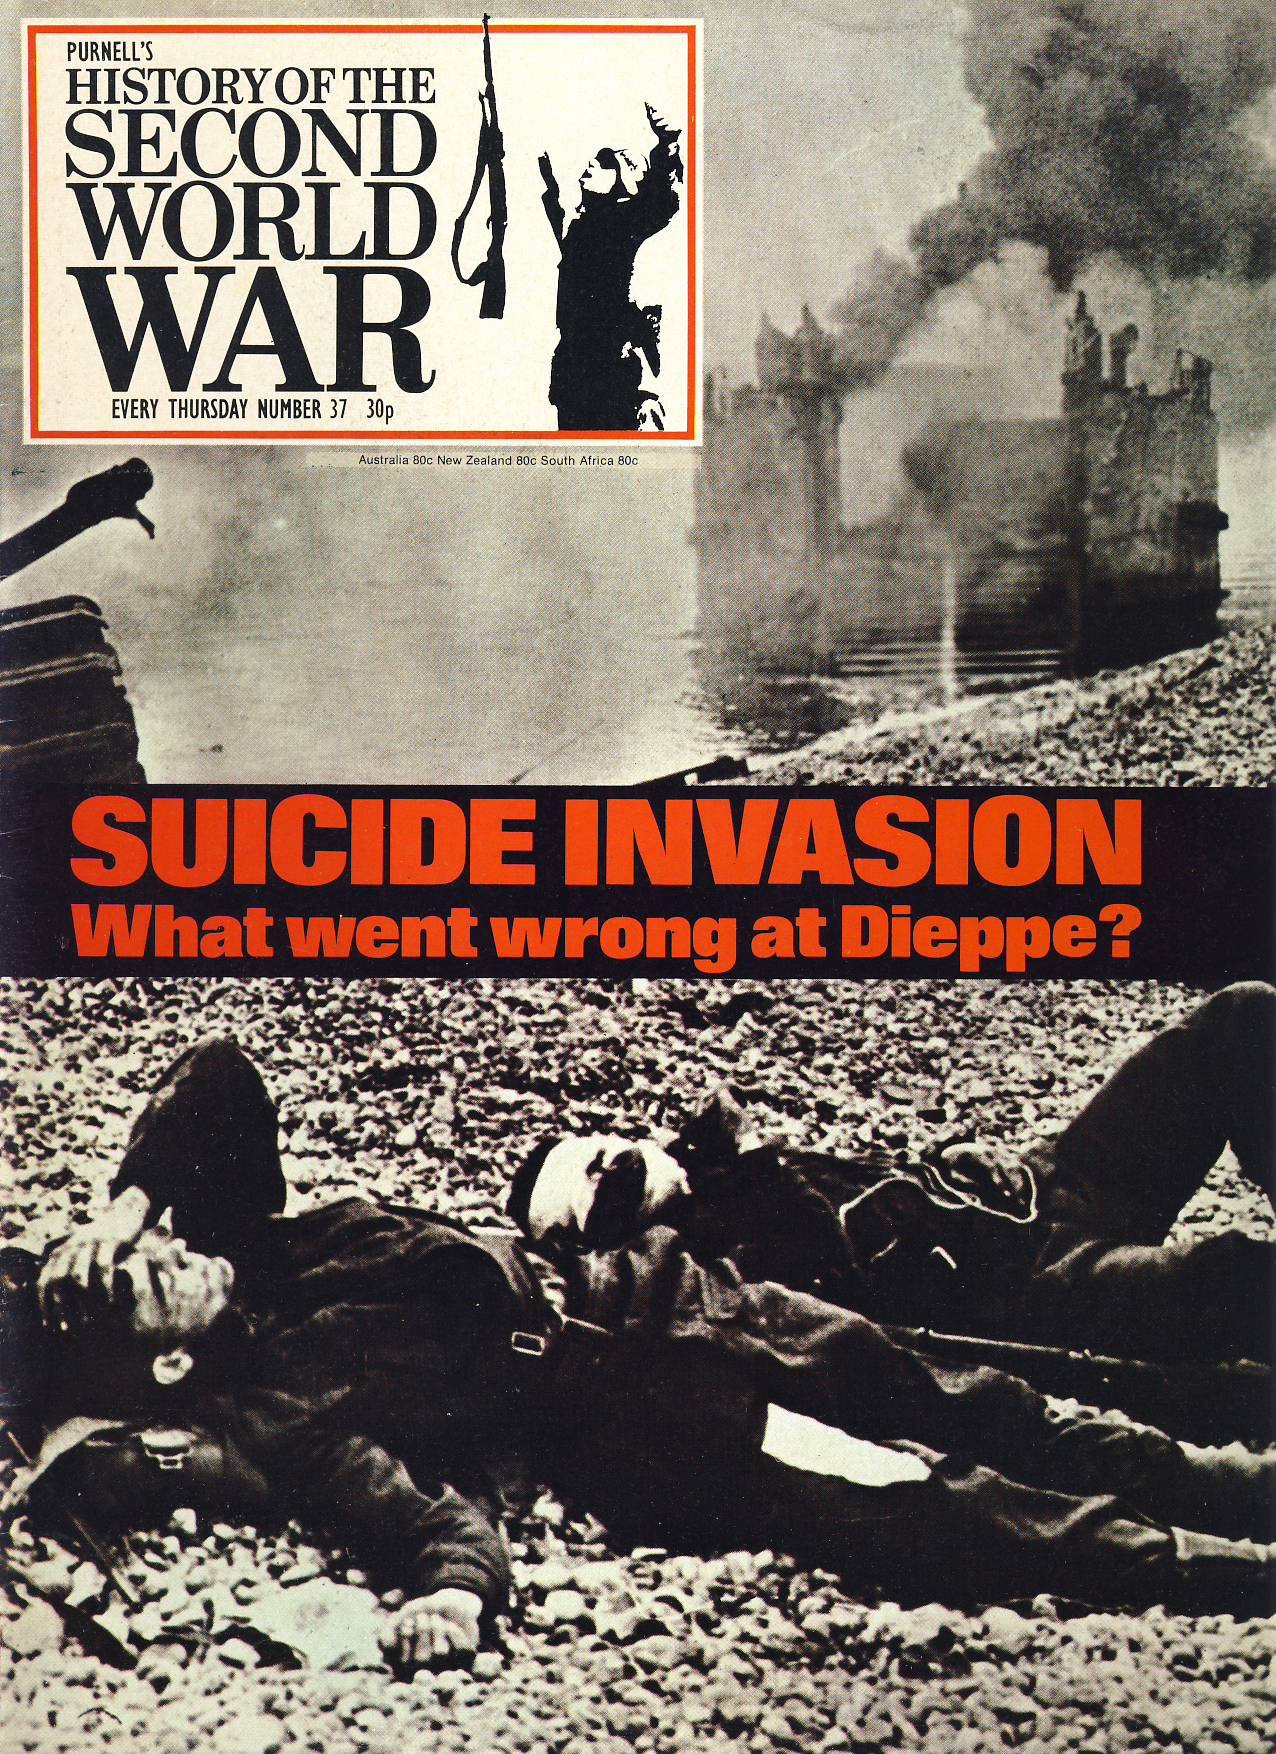 History of the Second World War Magazine #37 SUICIDE INVASION Dieppe A vintage Purnell's weekly magazine in good read condition. Please see larger photo and full description for details.